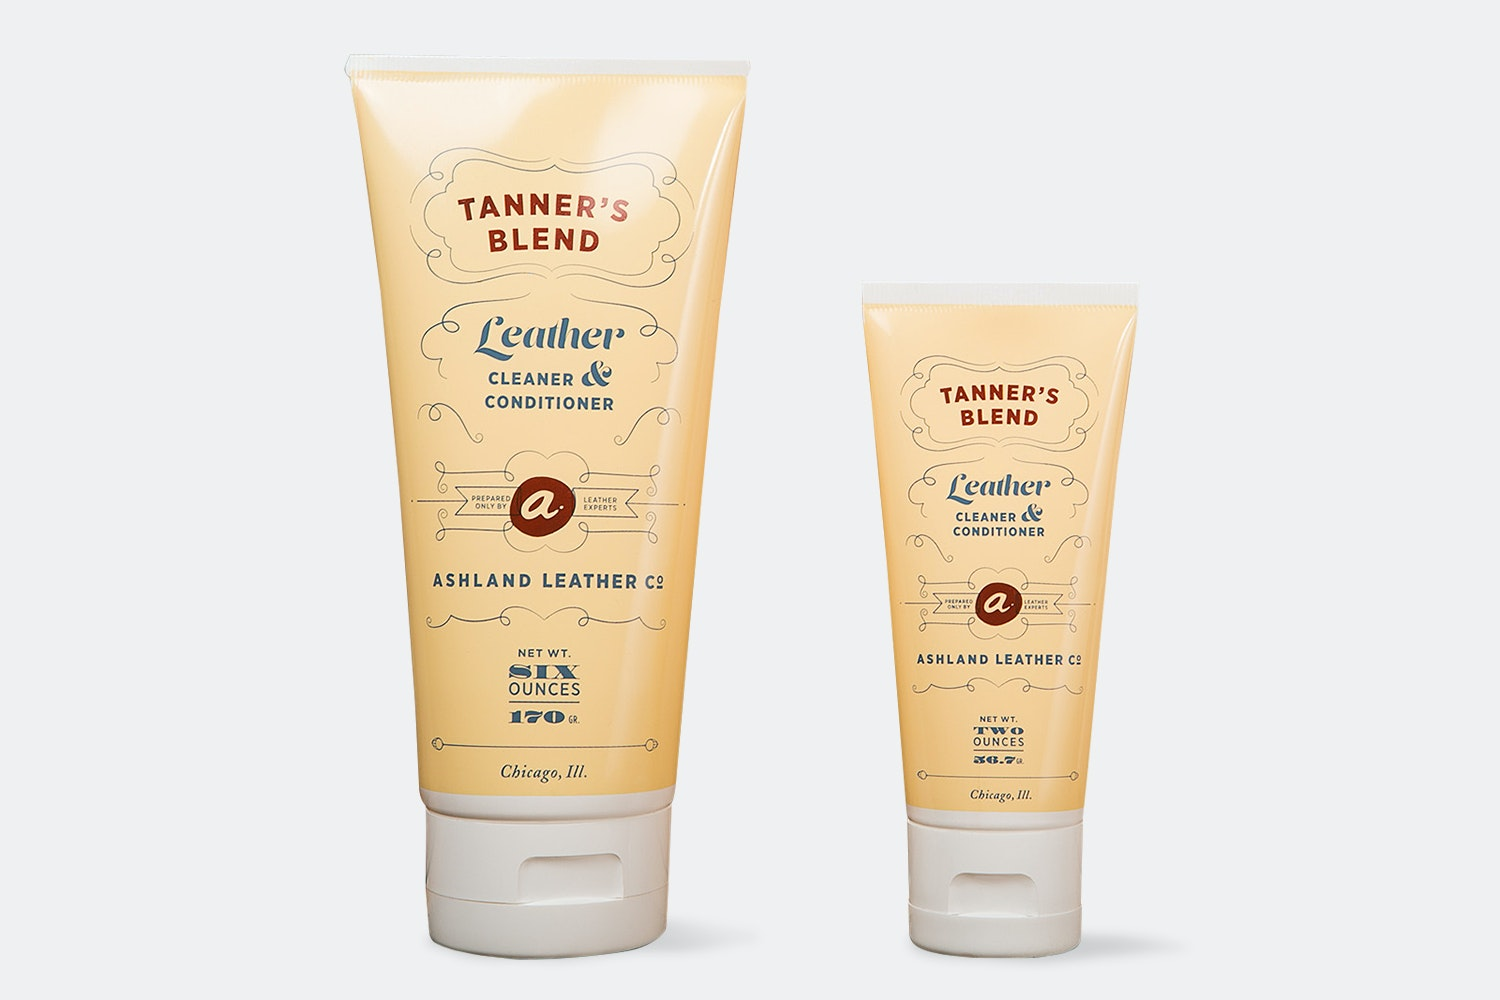 Ashland Leather Cleaner & Conditioner